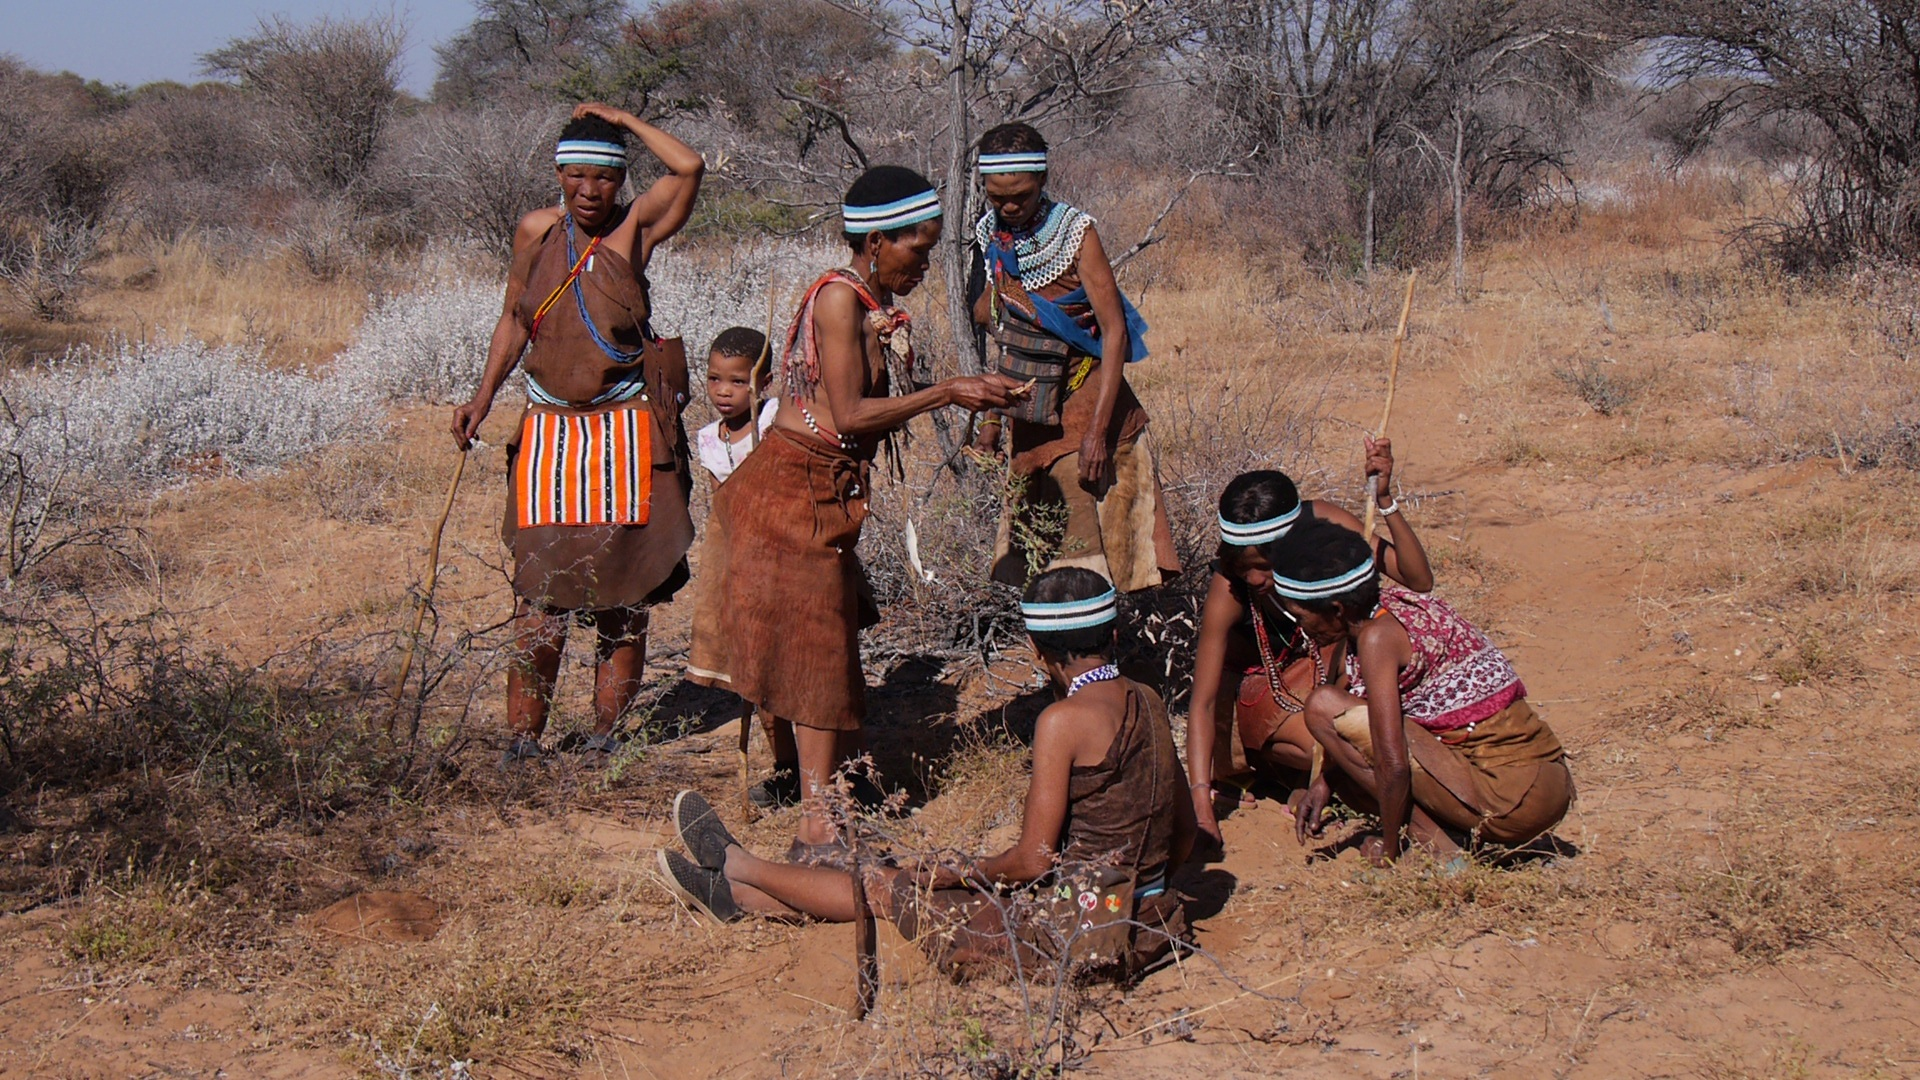 Indigenous people in Botswana